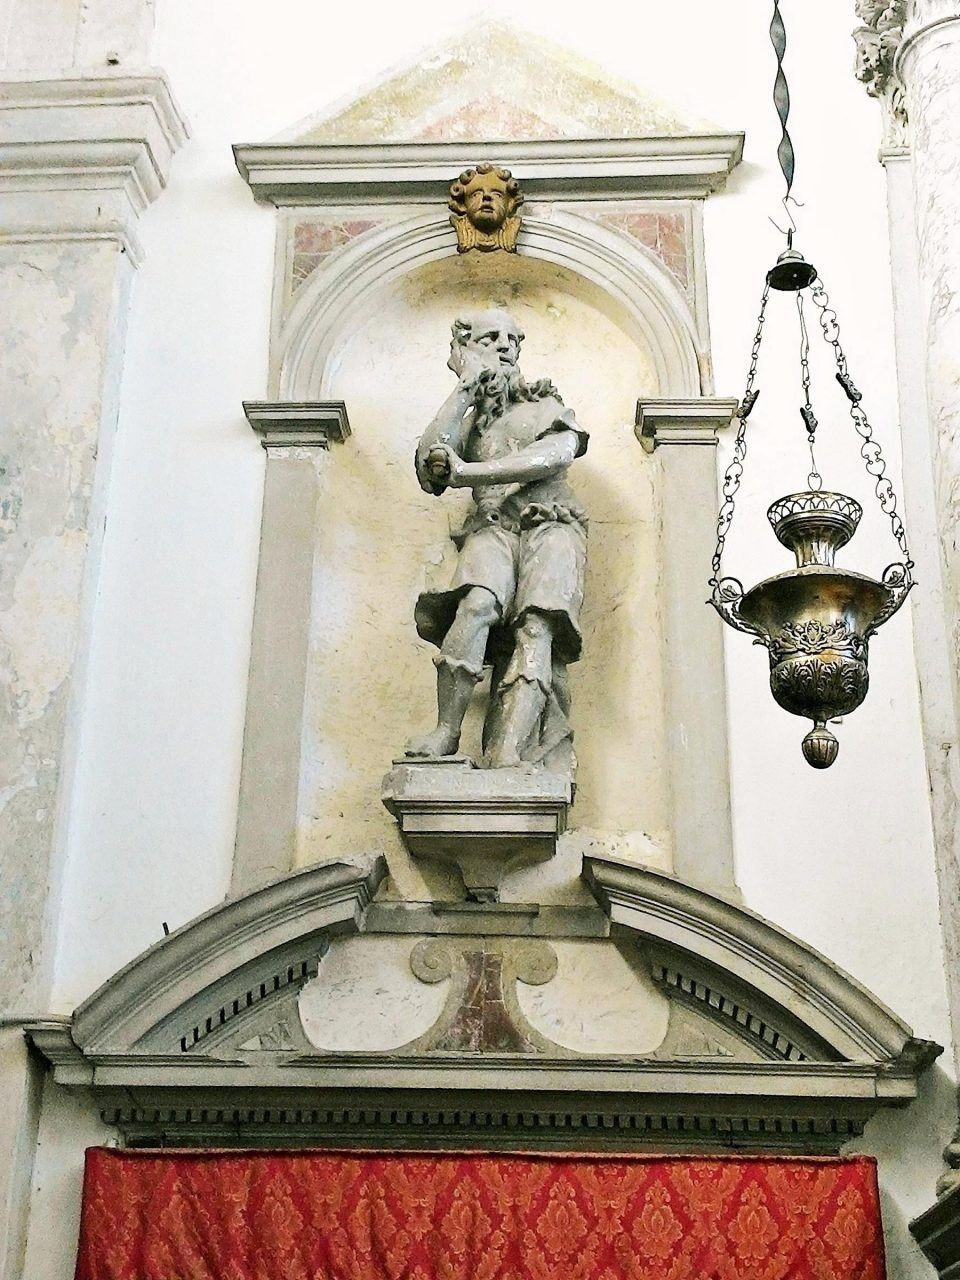 S. Paolo.